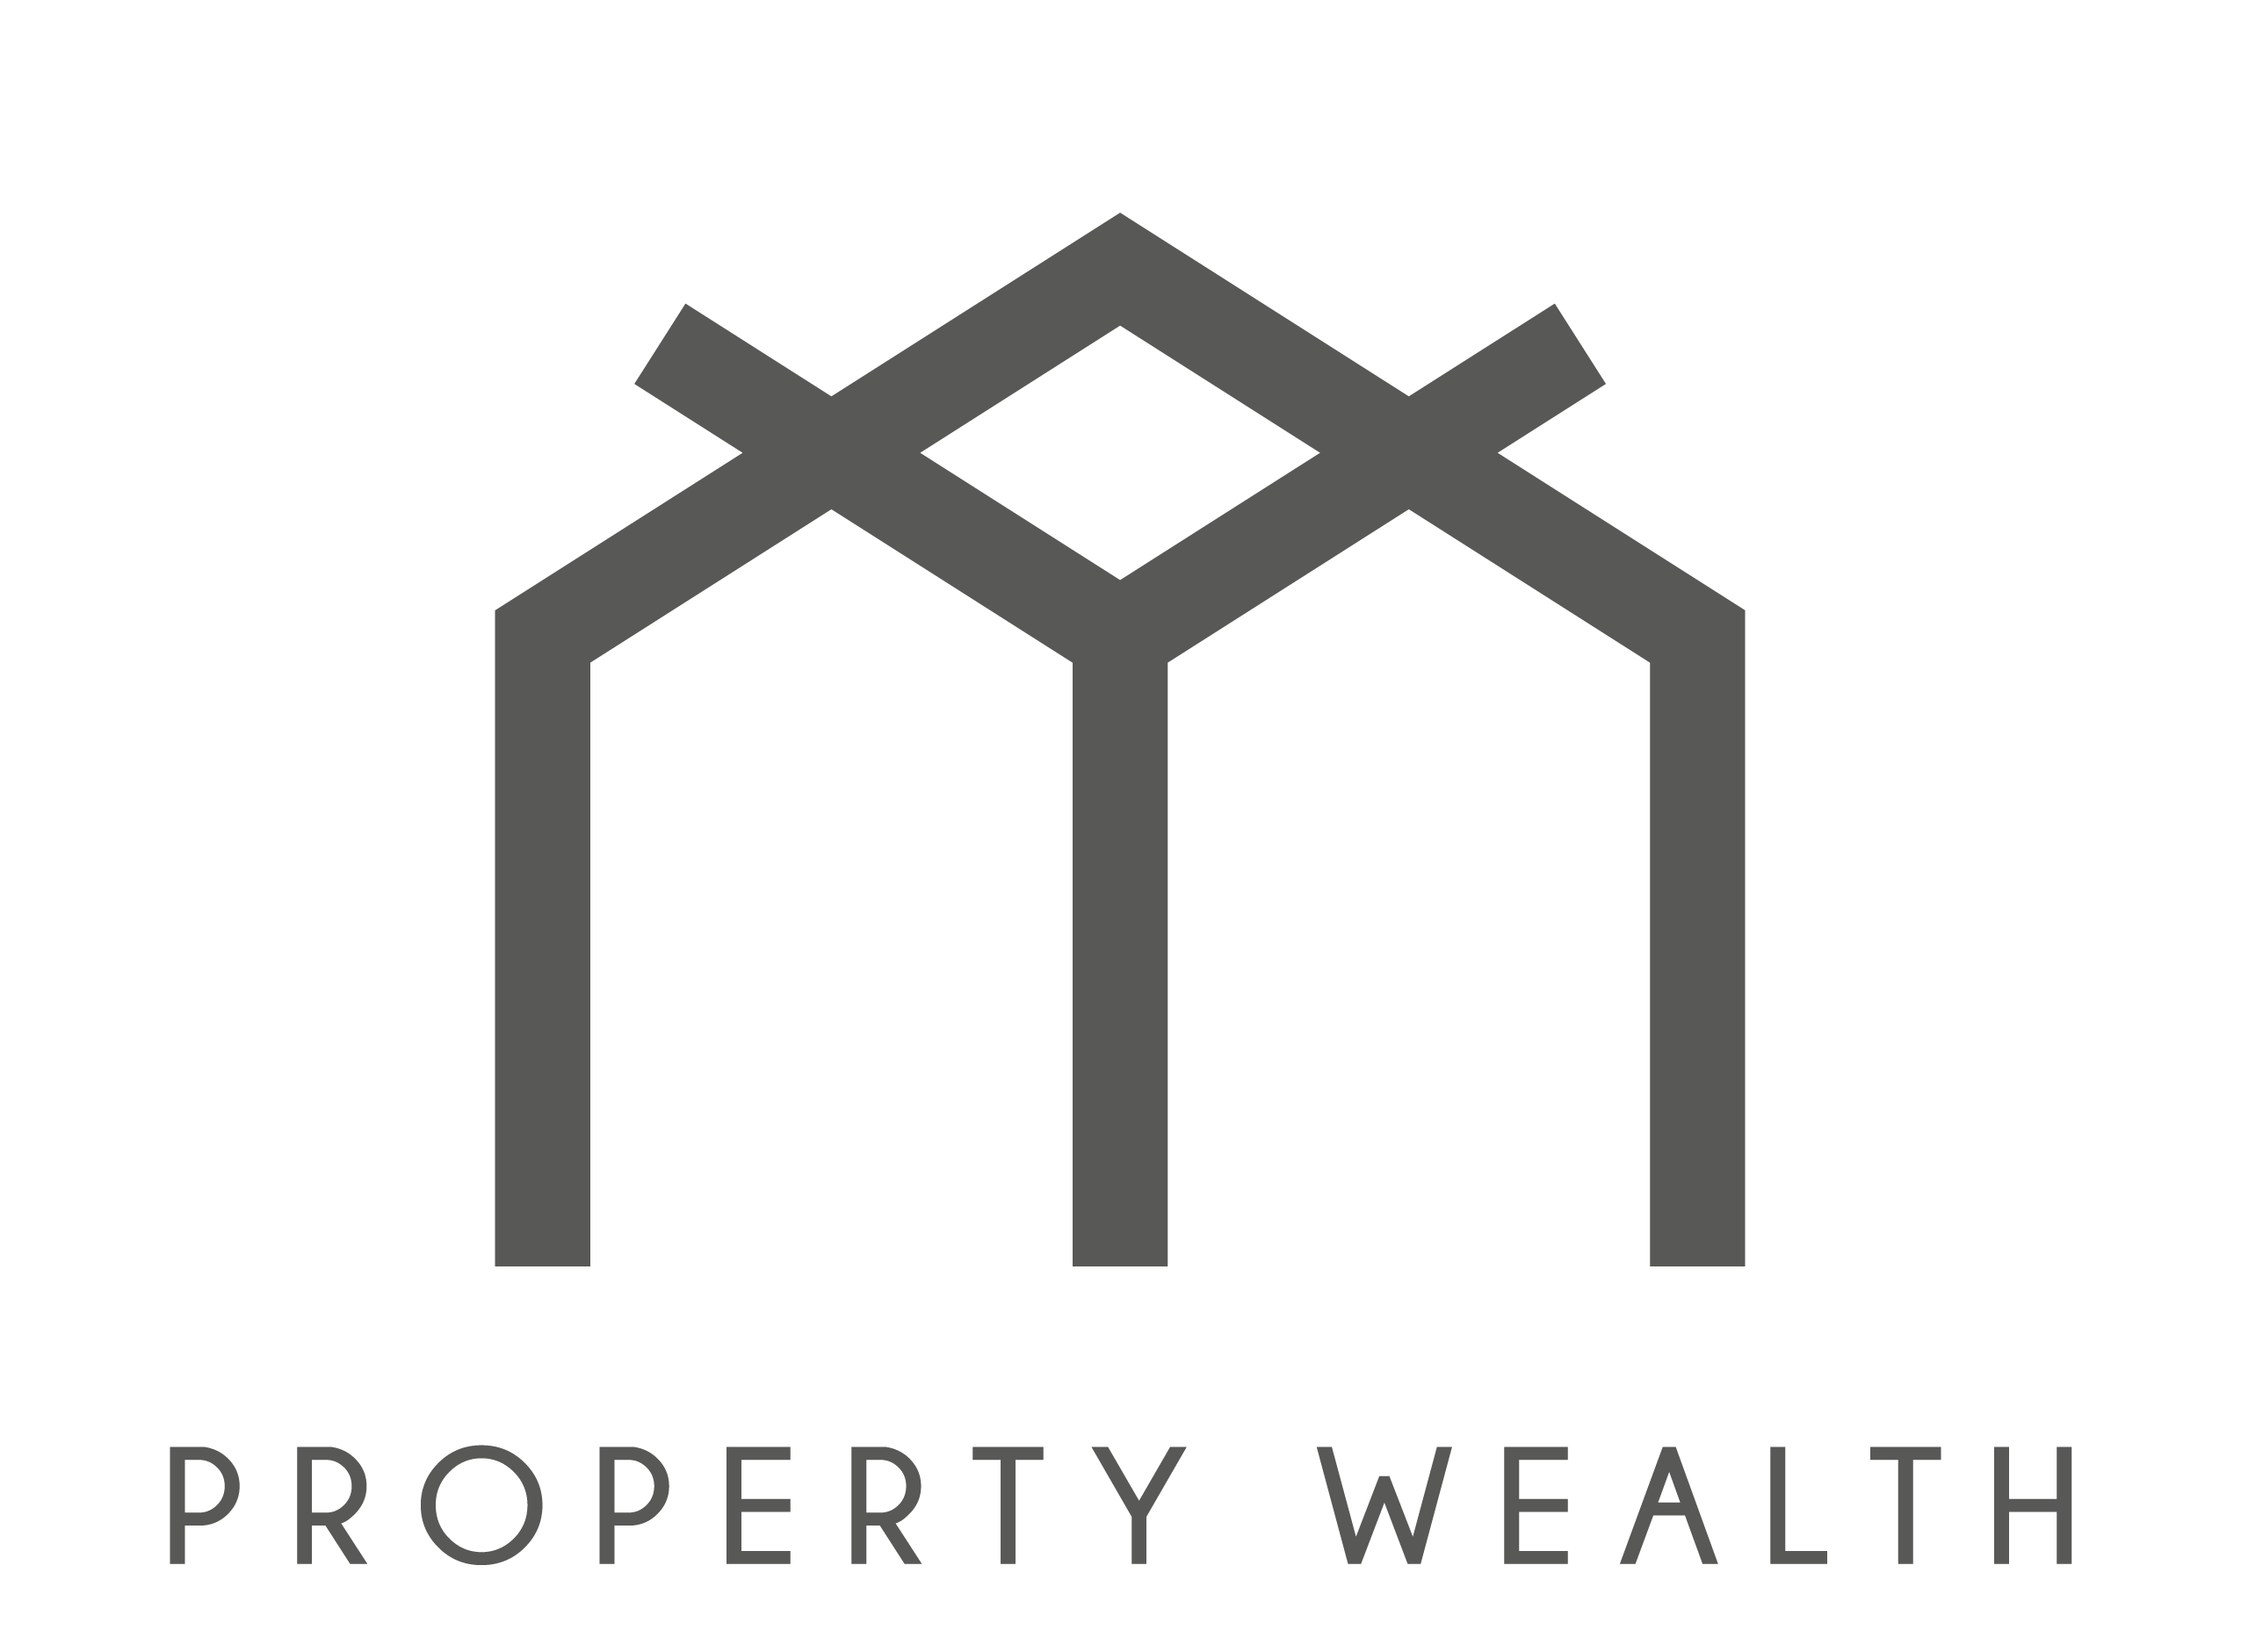 My Property Wealth